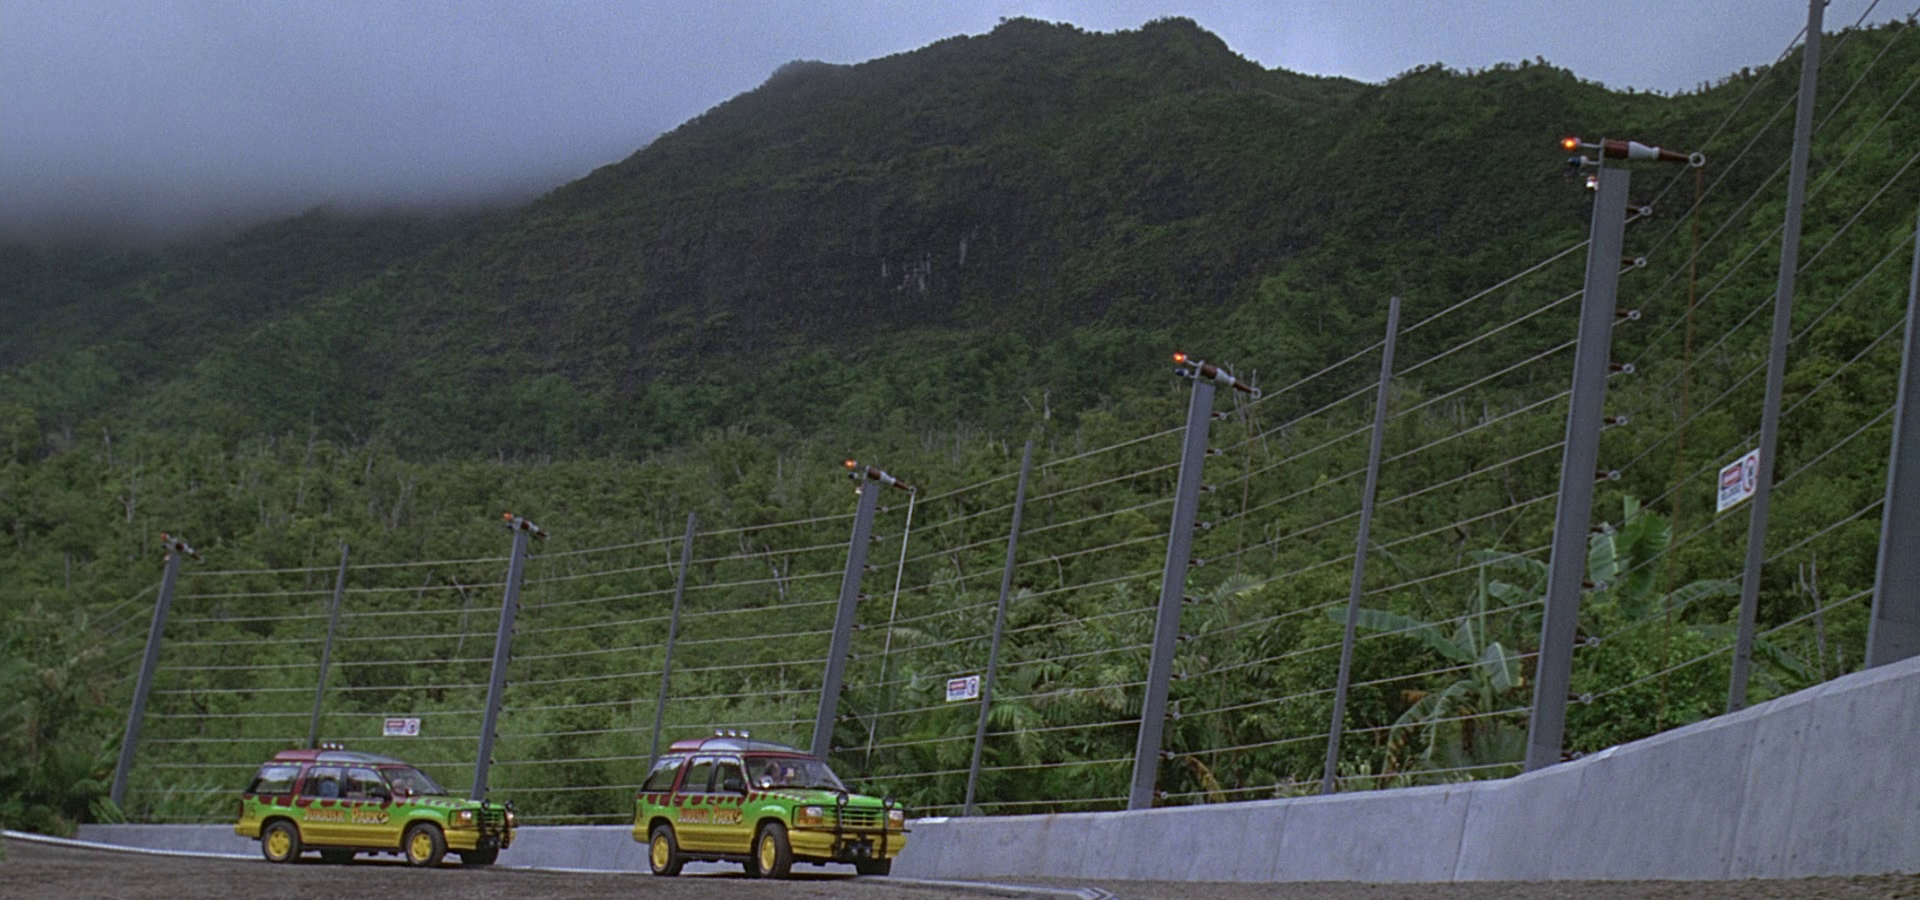 Electric Fence | Jurassic Park wiki | FANDOM powered by Wikia